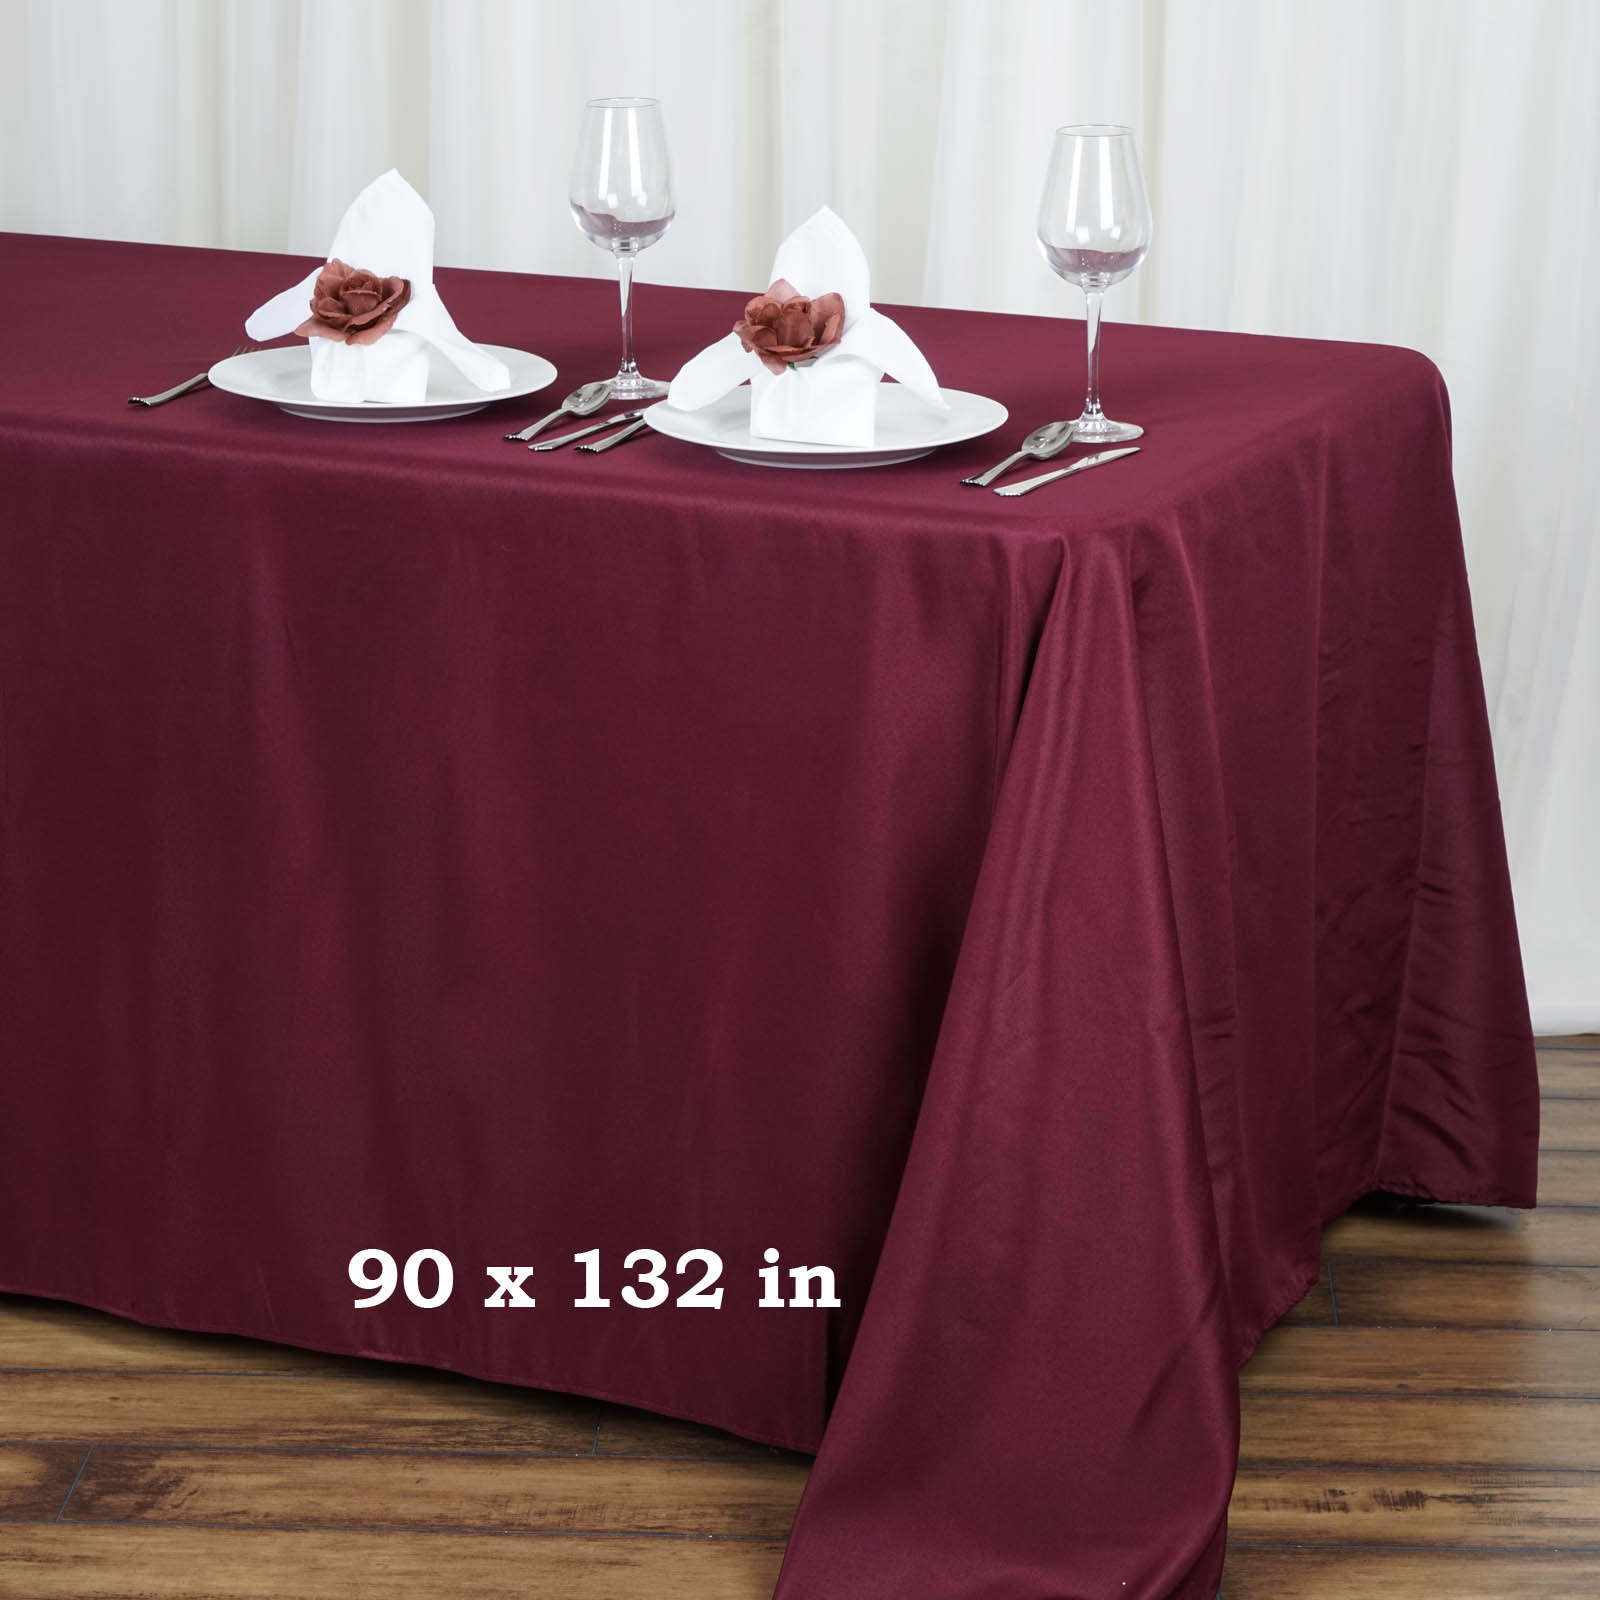 90 x 132 polyester tablecloth wedding party table linens for Table linens